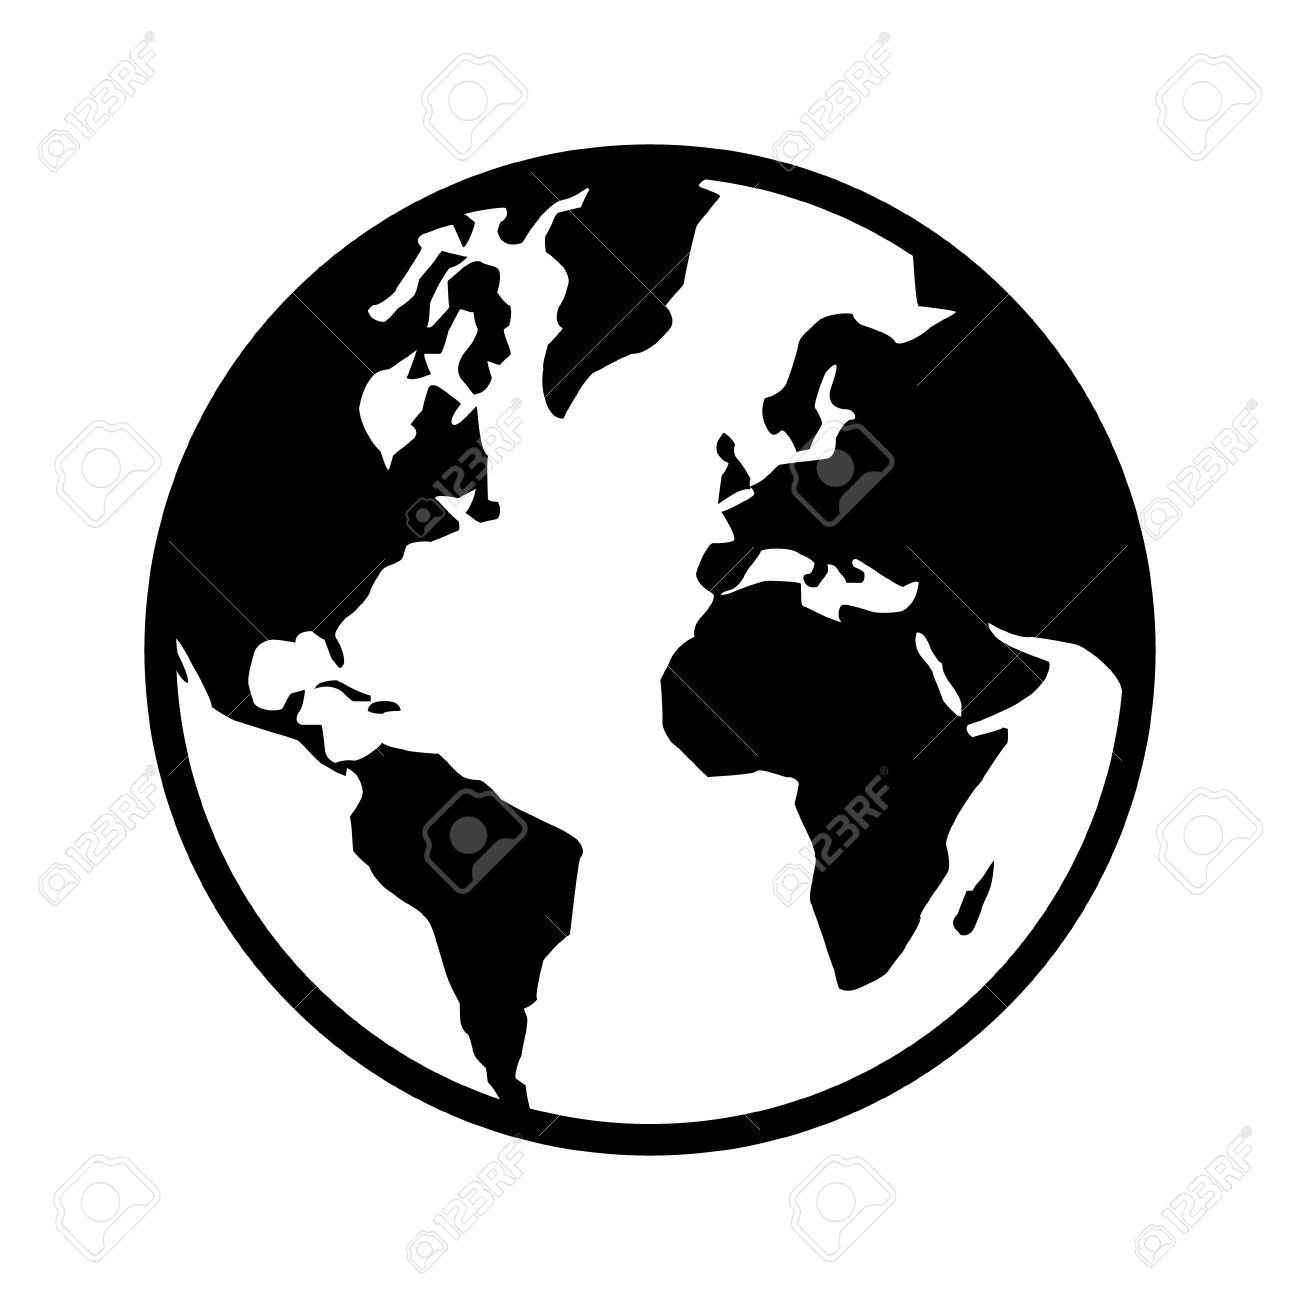 World silhouette vector at getdrawings free for personal use 1300x1300 black world map icon stock vector hunthomas 132803244 best of gumiabroncs